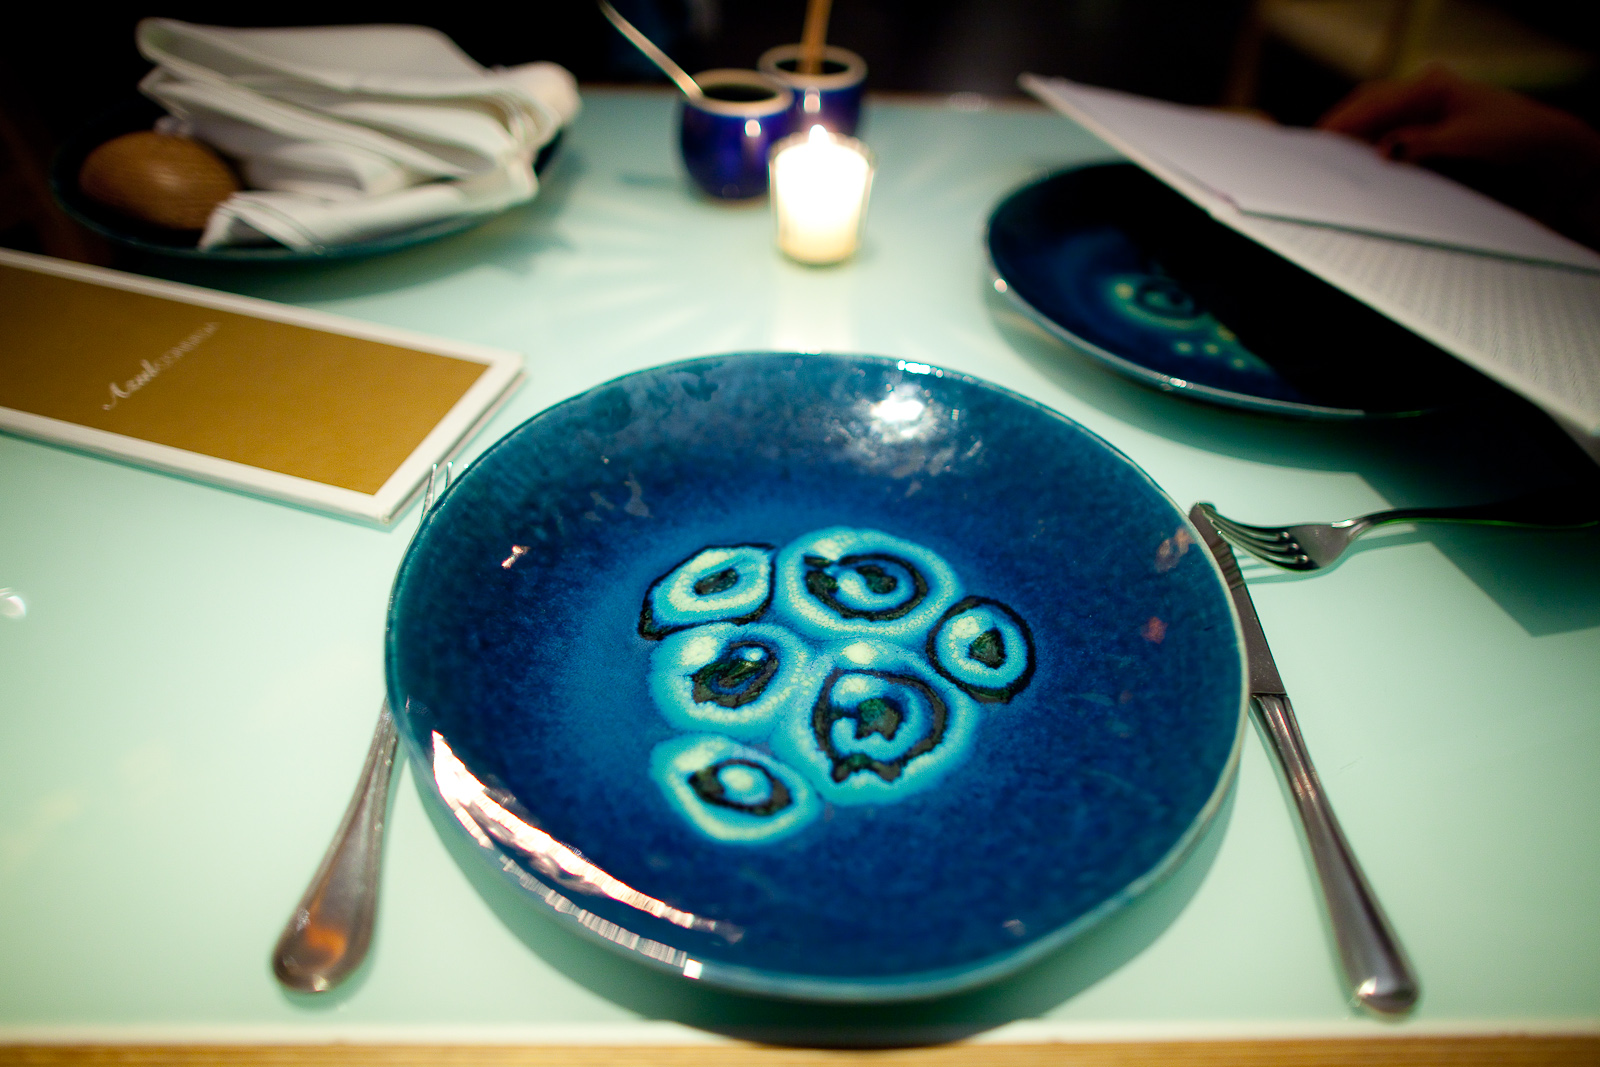 Gorgeous handmade dishware: turquoise plate